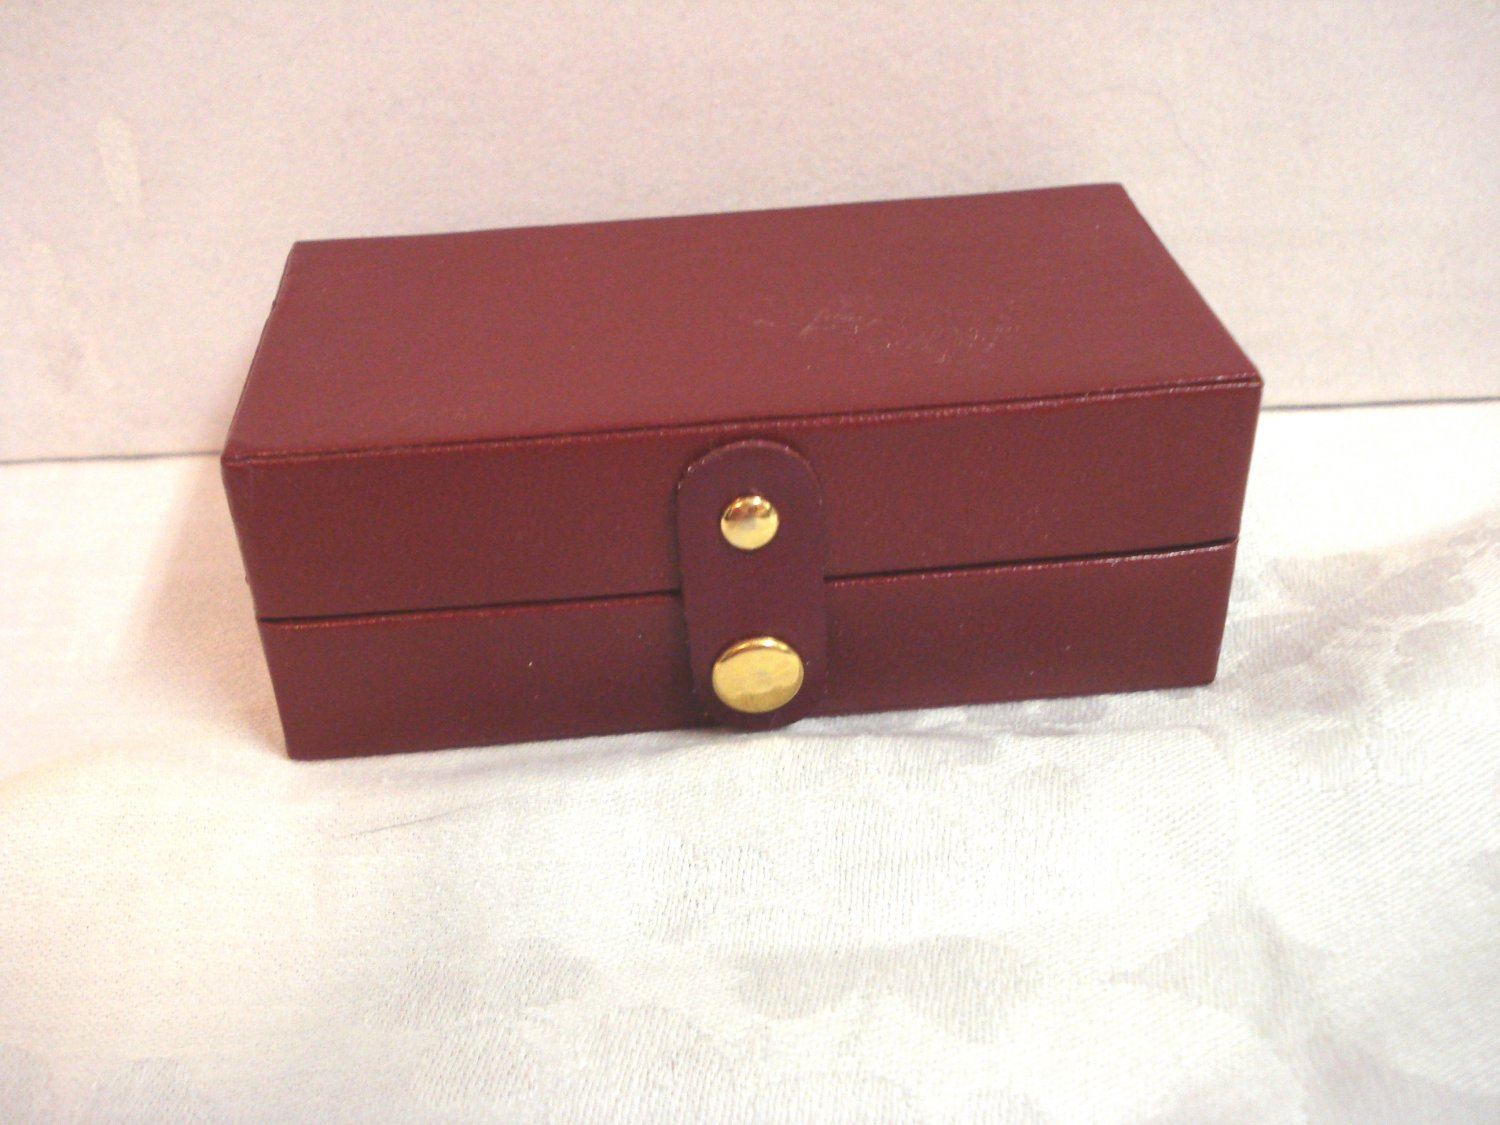 Leatherette and faux suede travel jewelry box burgundy pre-owned ll3277